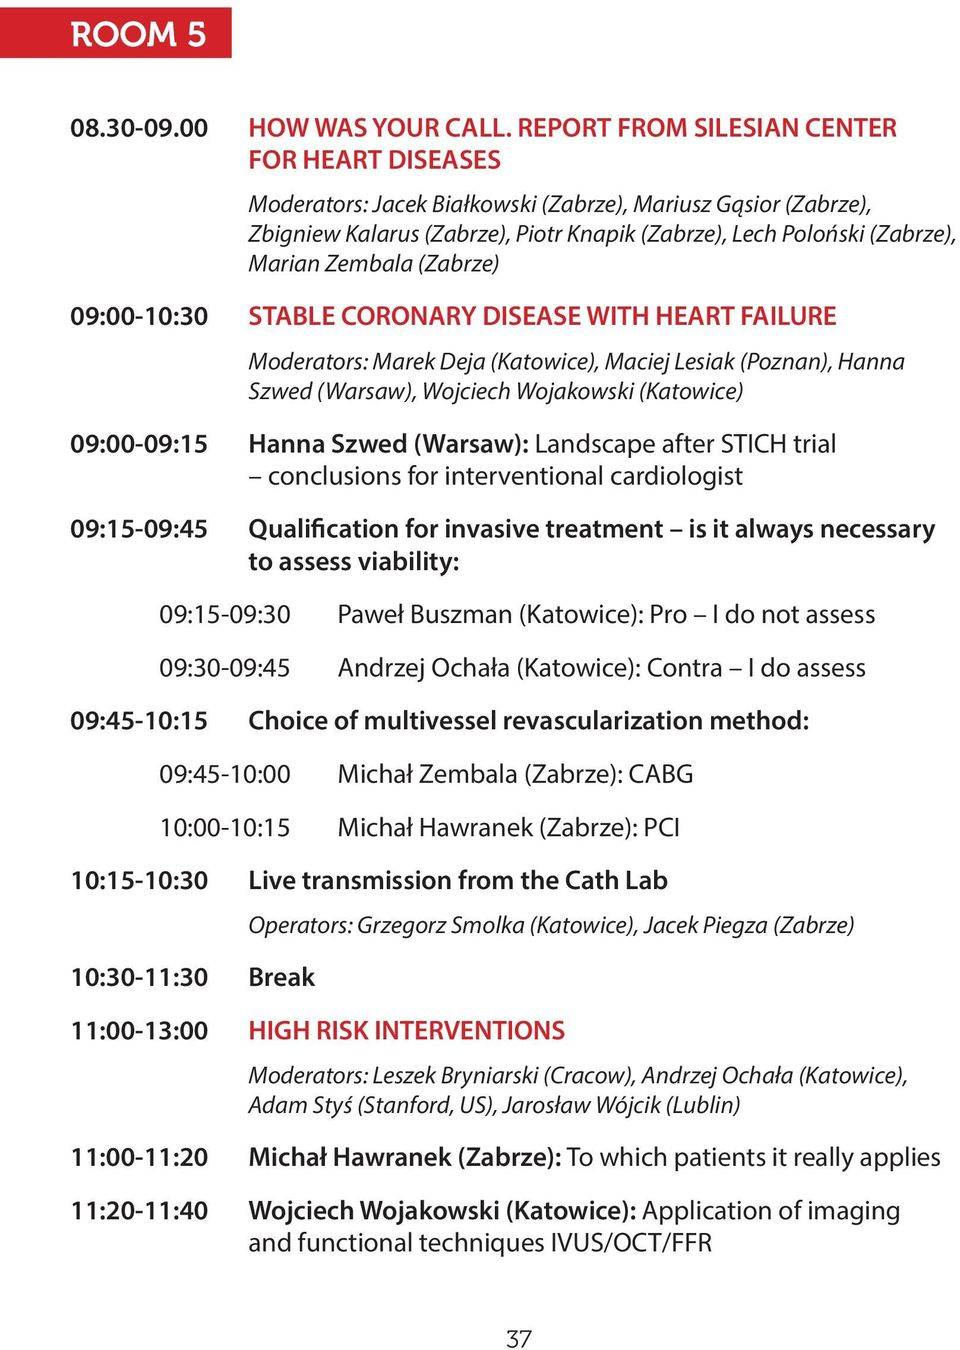 (Zabrze) 09:00-10:30 STABLE CORONARY DISEASE WITH HEART FAILURE Moderators: Marek Deja (Katowice), Maciej Lesiak (Poznan), Hanna Szwed (Warsaw), Wojciech Wojakowski (Katowice) 09:00-09:15 Hanna Szwed